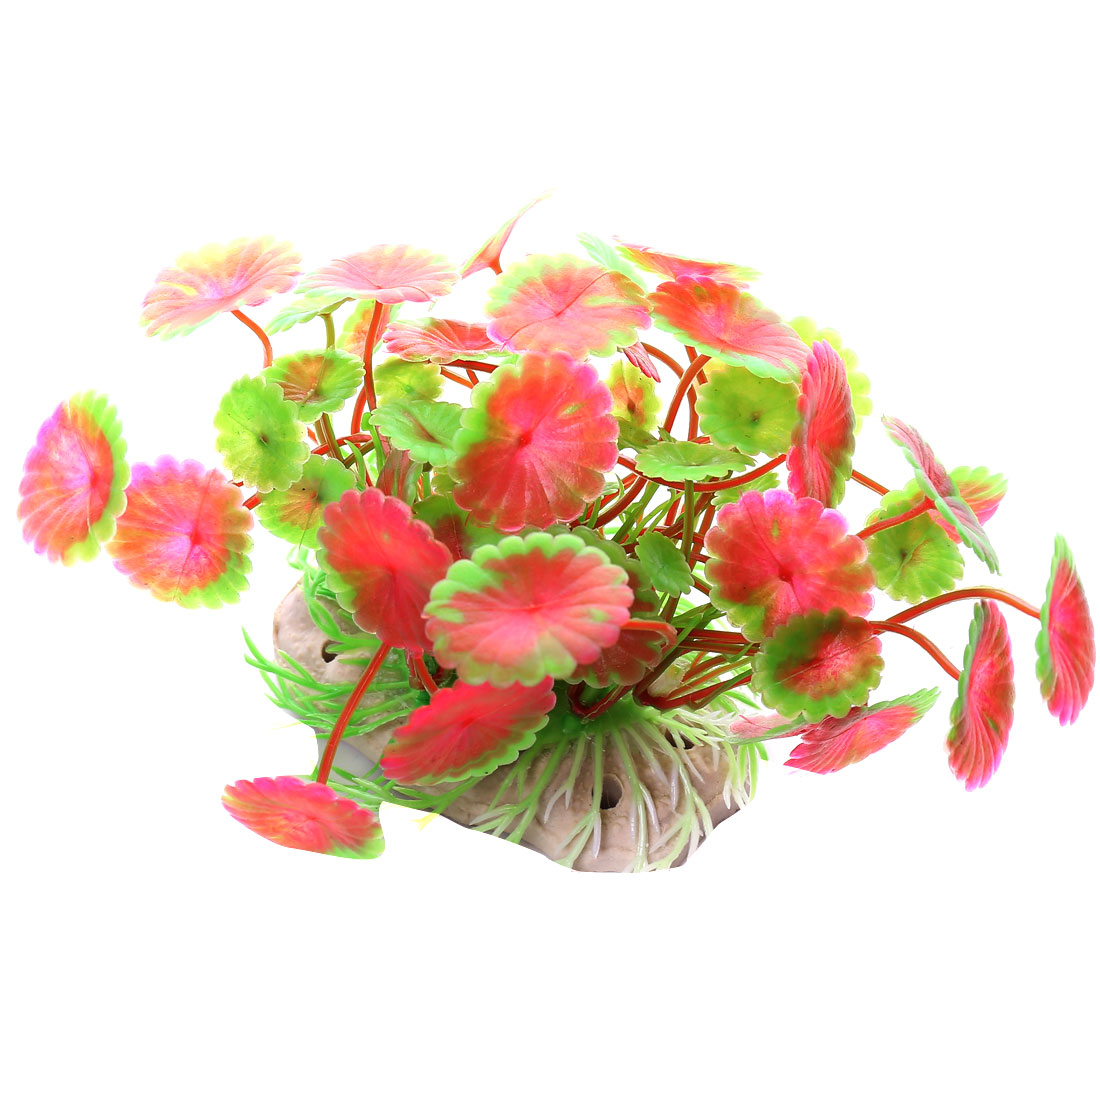 Aquarium Plastic Fish Tank Decoration Ornament Water Flower Plant 10cm Long